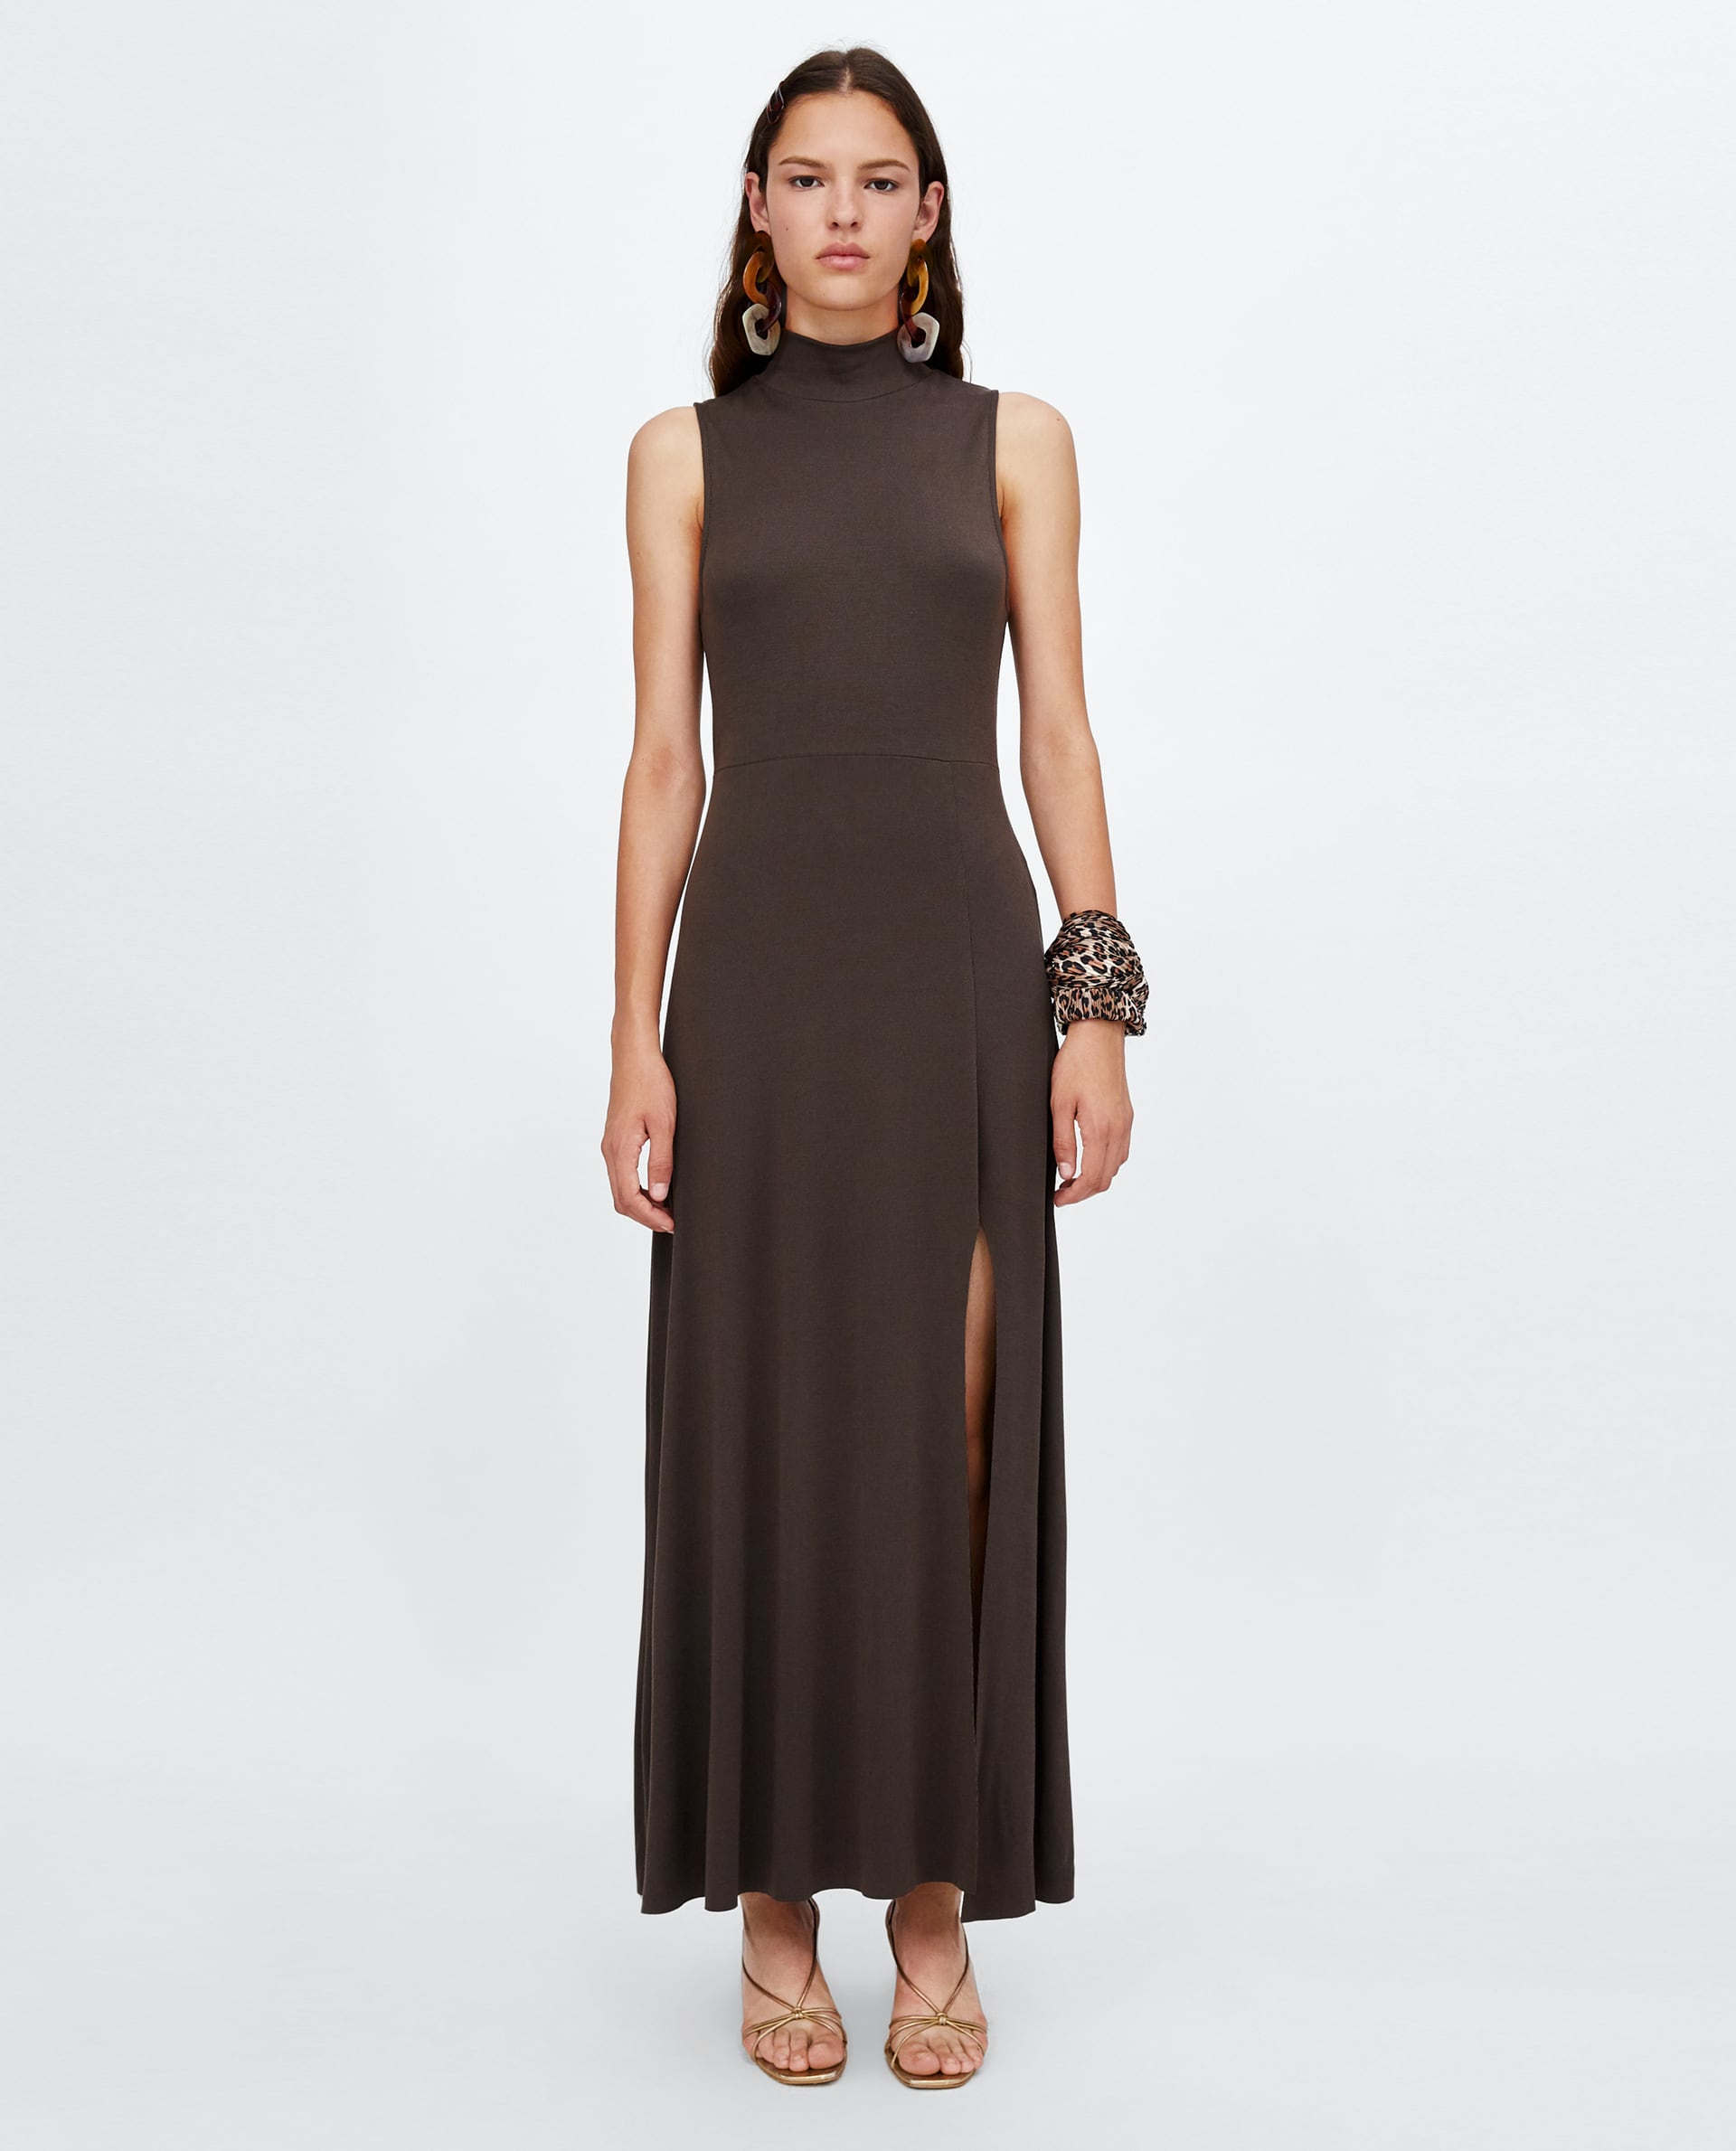 https://www.zara.com/ca/en/flowy-high-neck-dress-p00264626.html?v1=6594096&v2=1074660